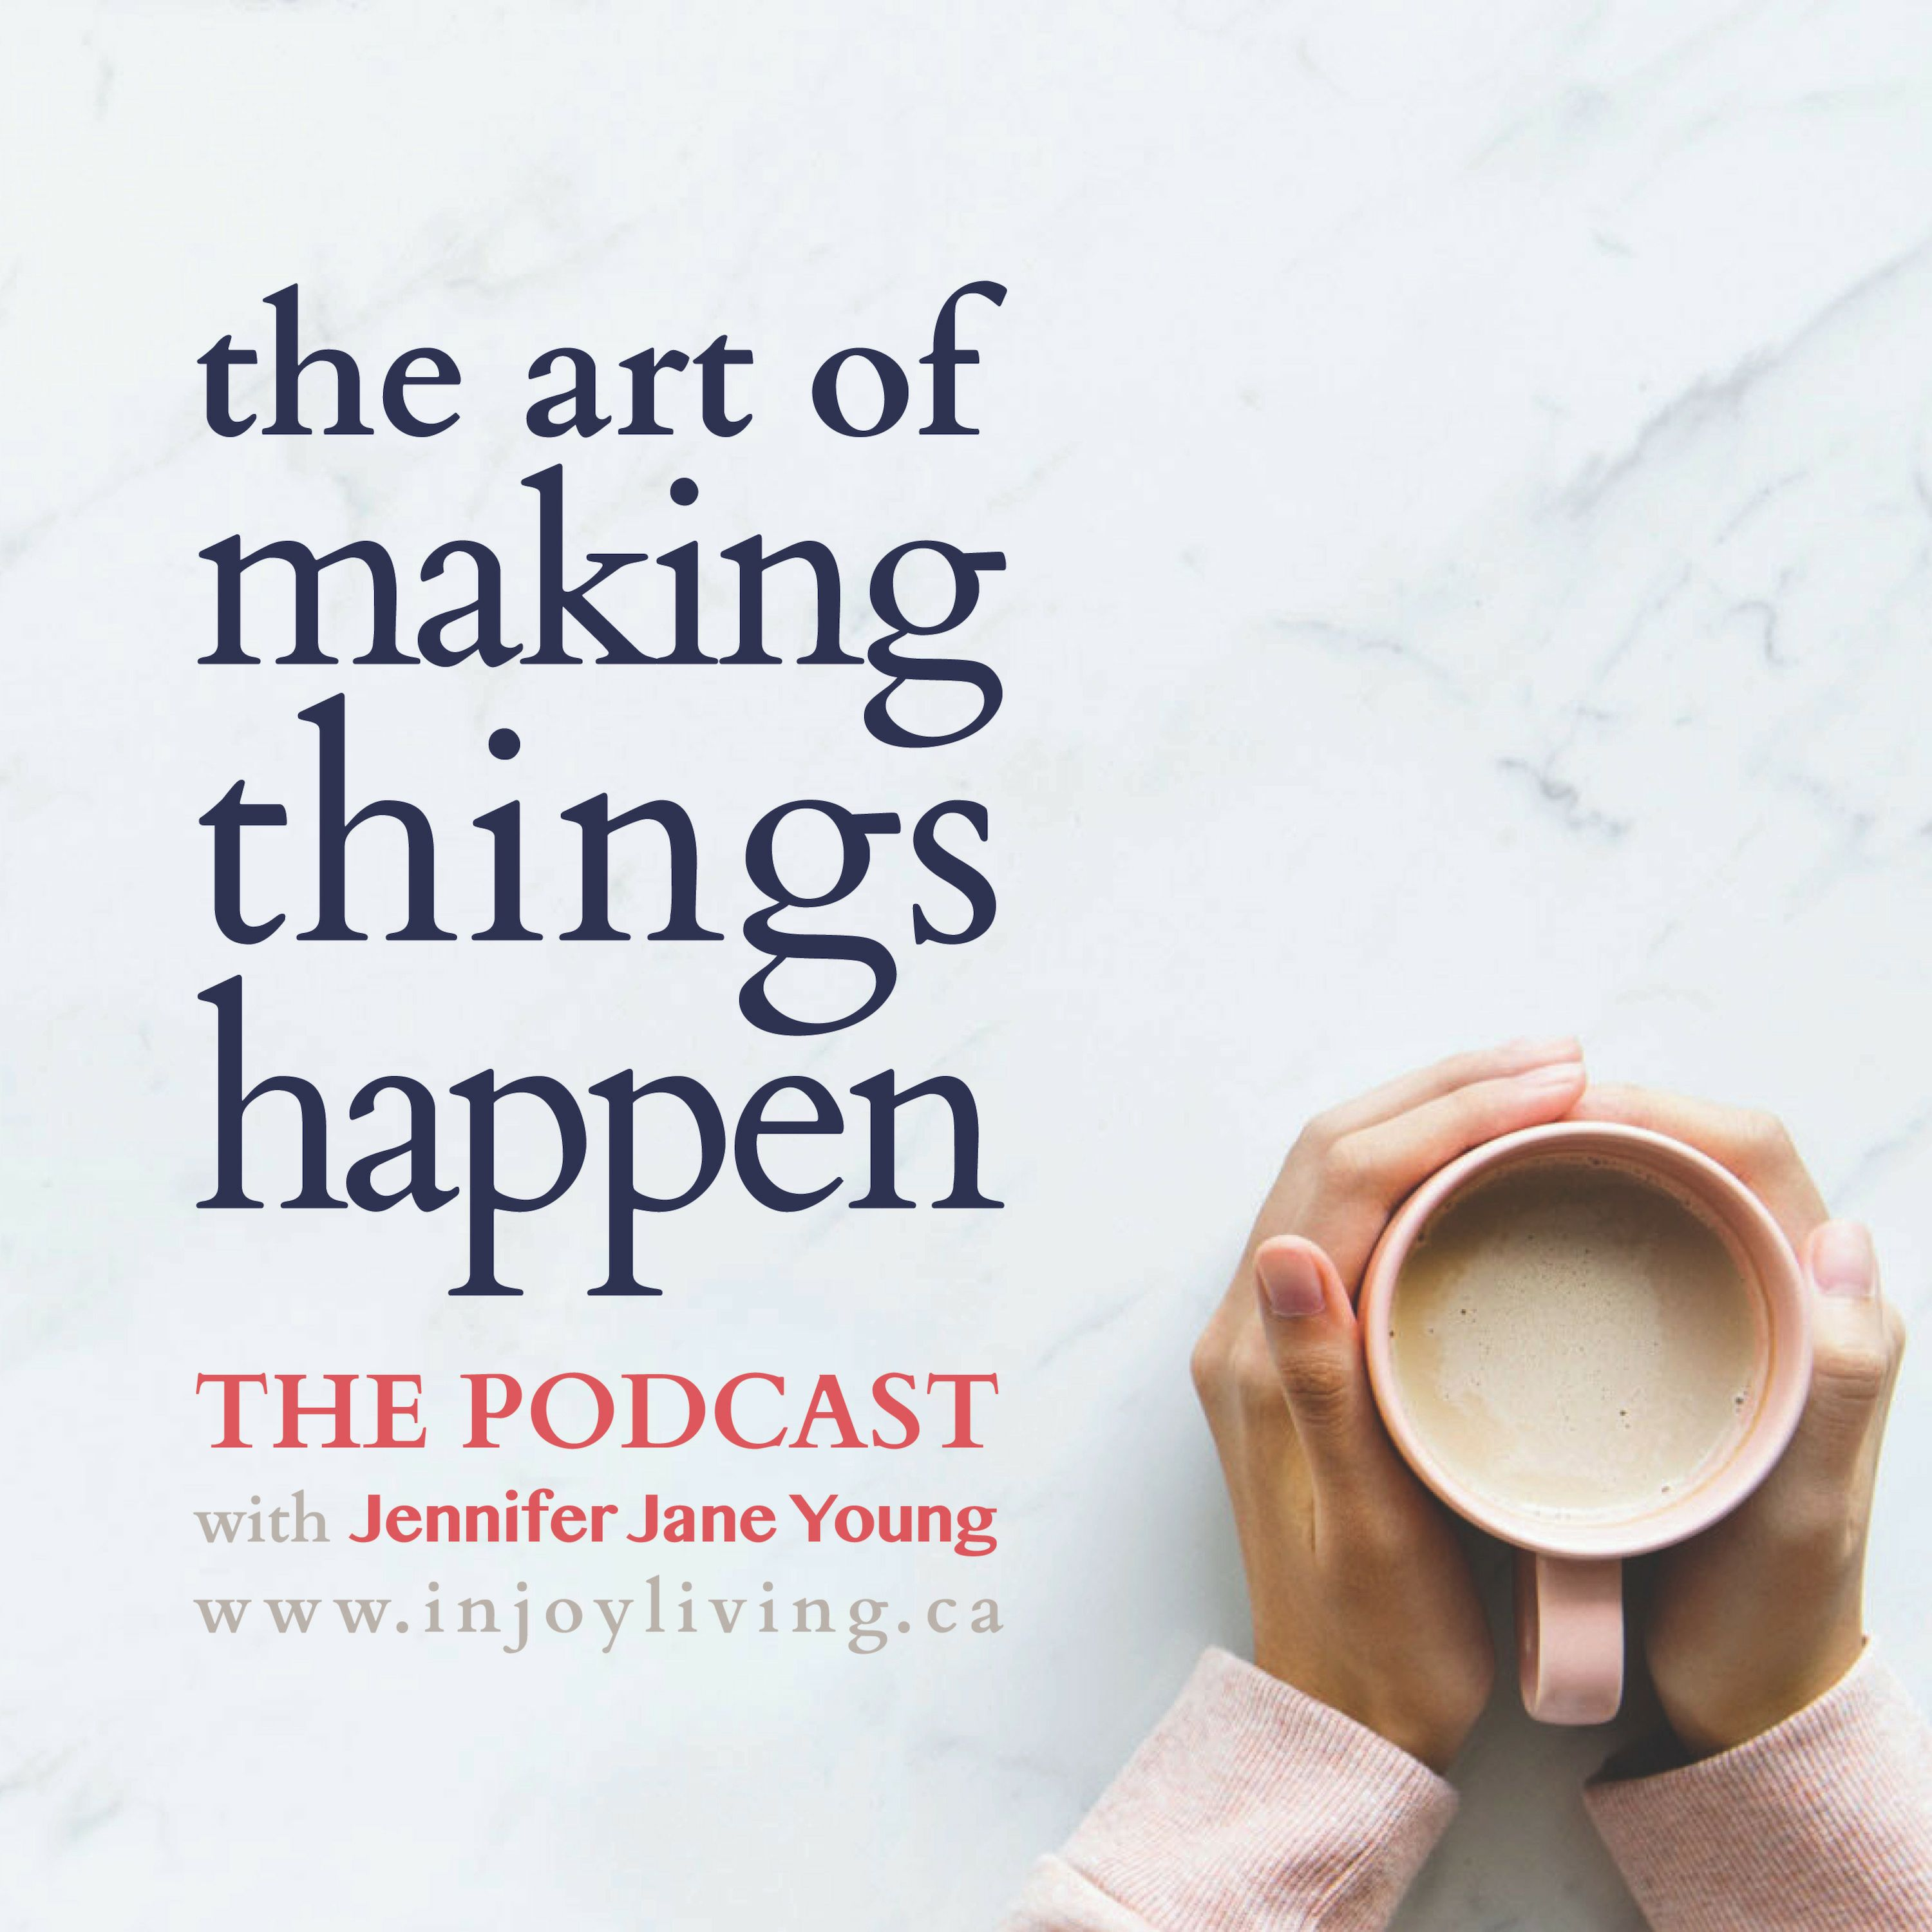 THE ART OF MAKING THINGS HAPPEN